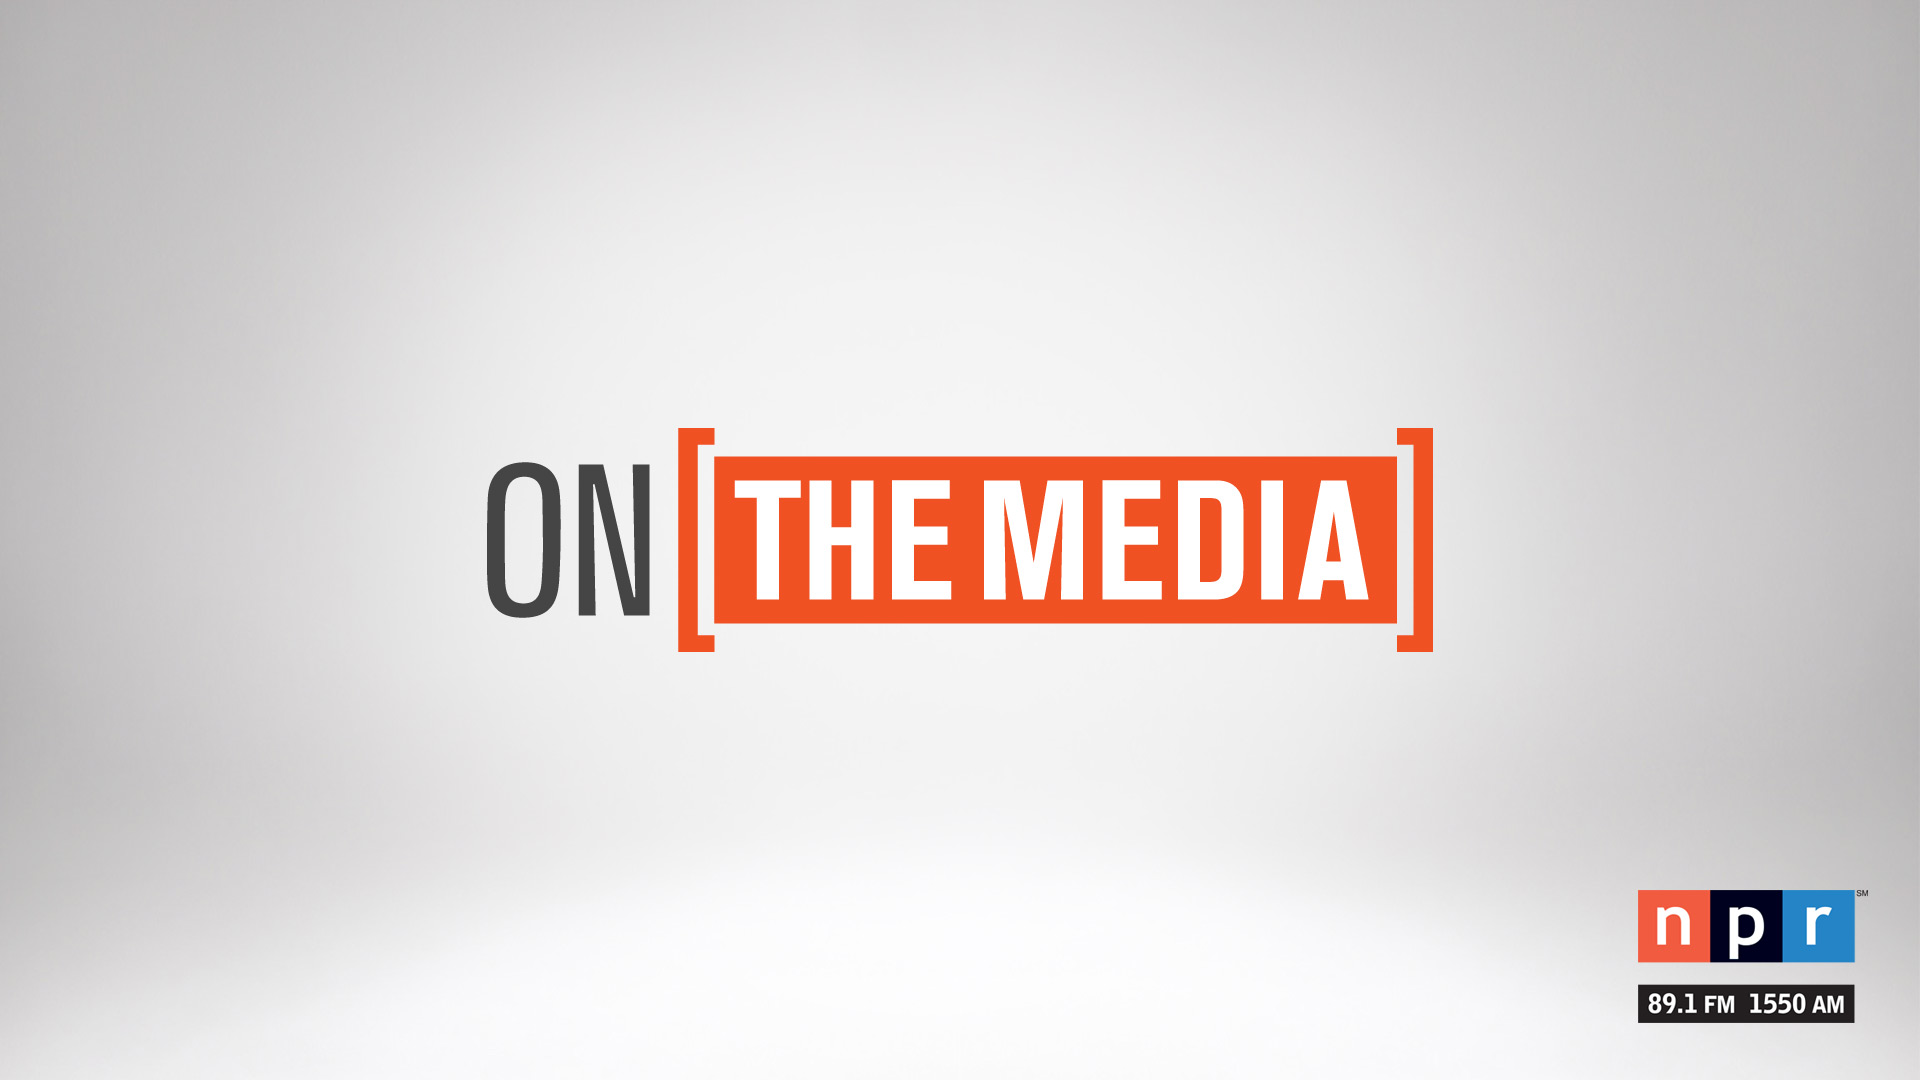 On the Media is hosted by veteran reporters Brooke Gladstone and Bob Garfield.